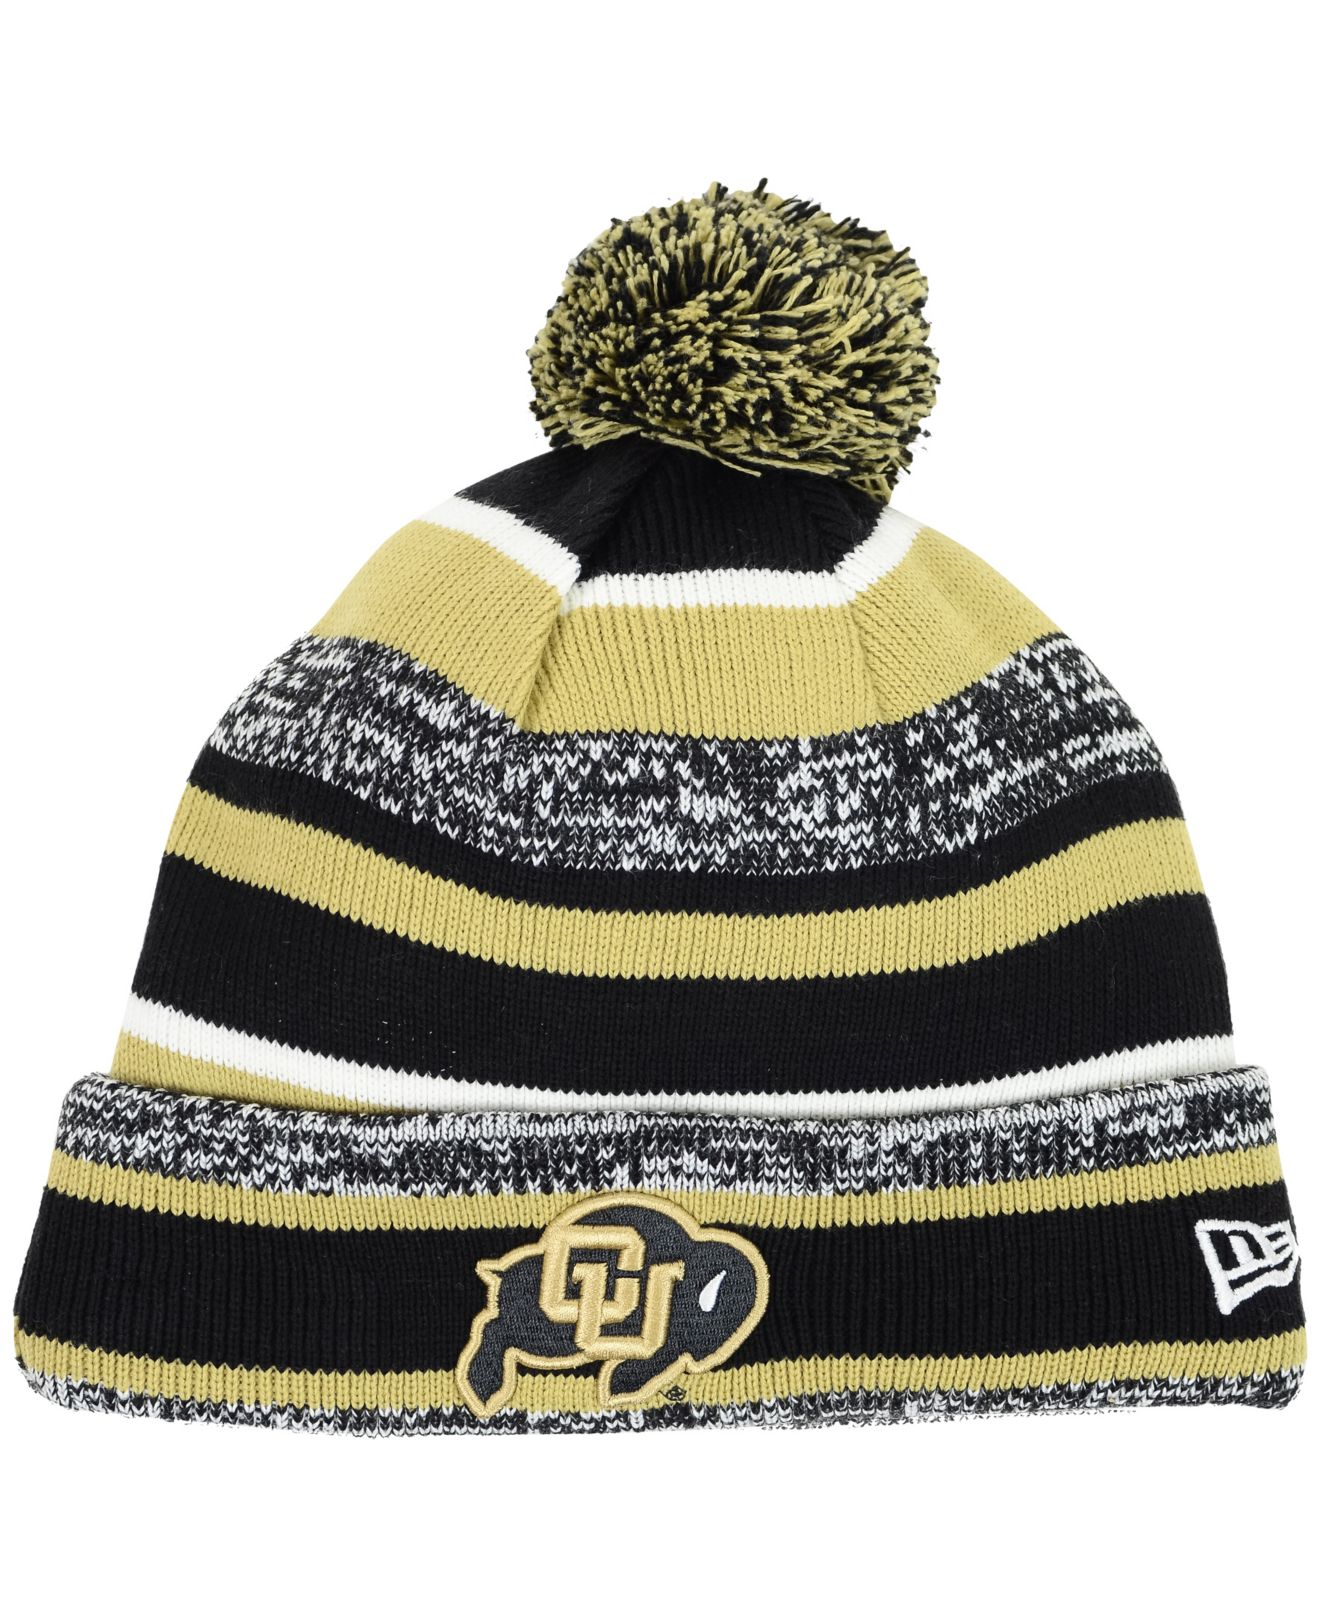 591ef11c6e7 ... italy lyst ktz colorado buffaloes sport knit hat in yellow for men  c765e 0203d